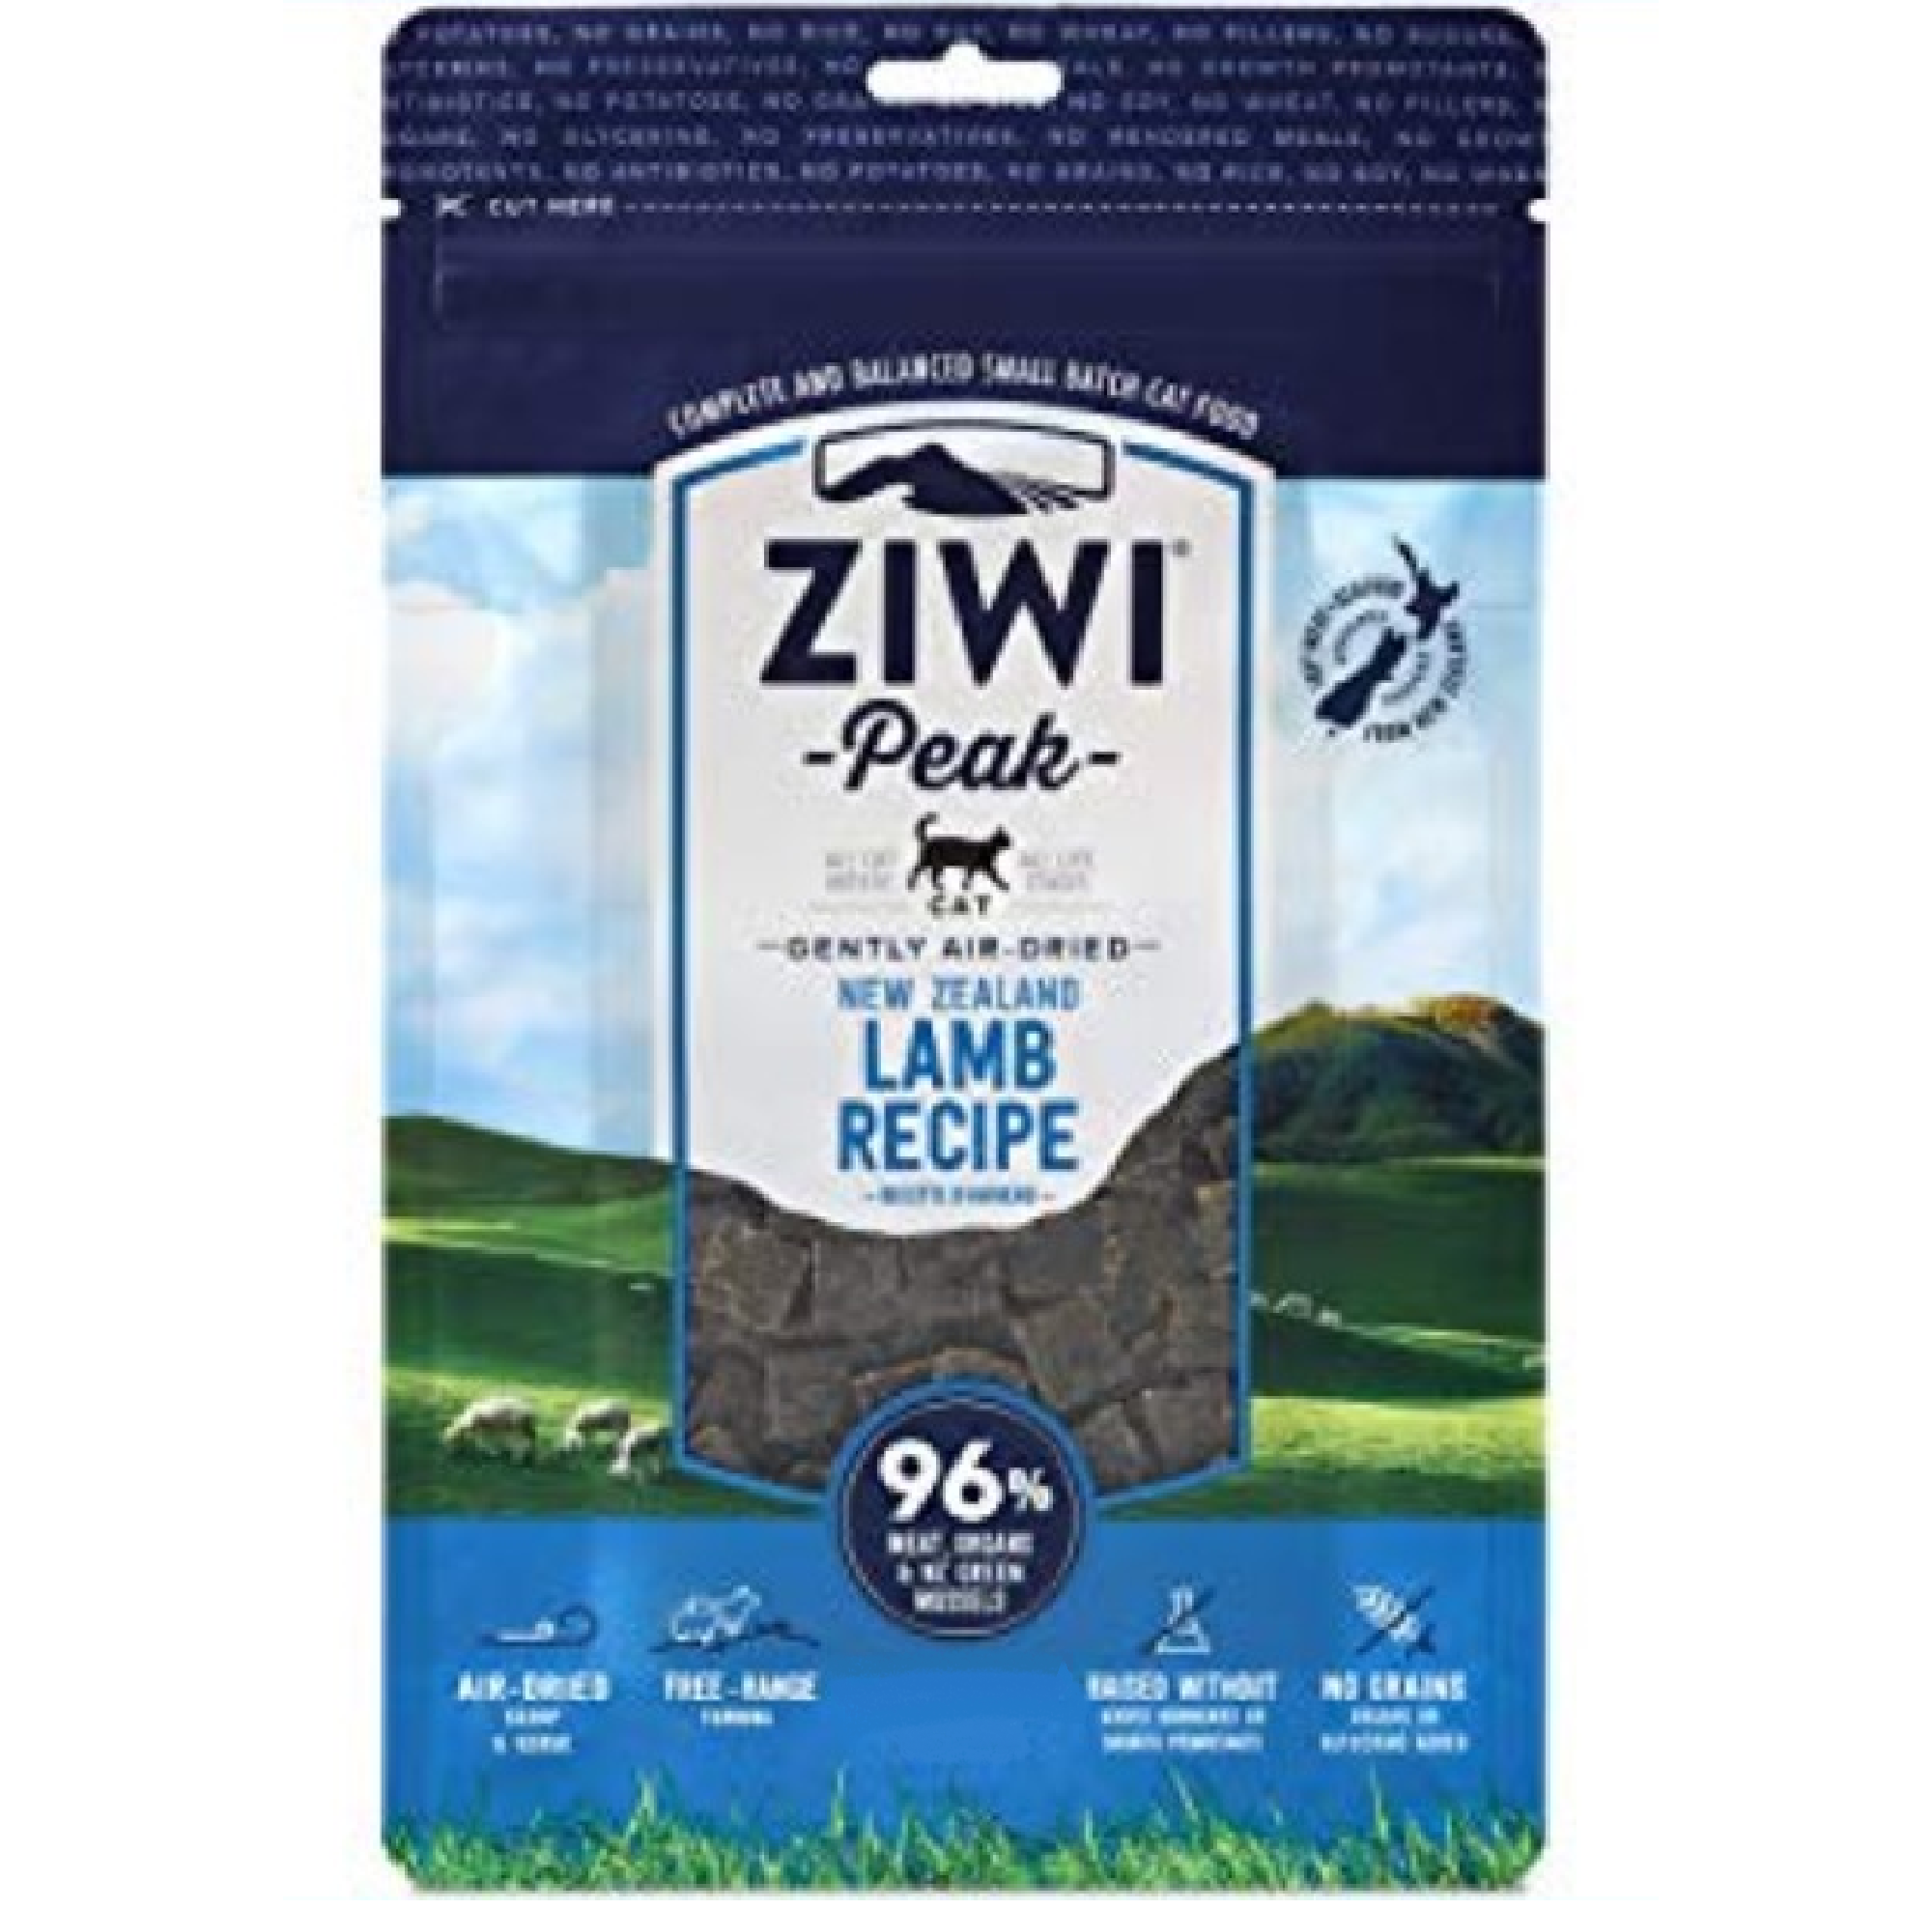 Ziwi Peak Cat Air-Dried Lamb